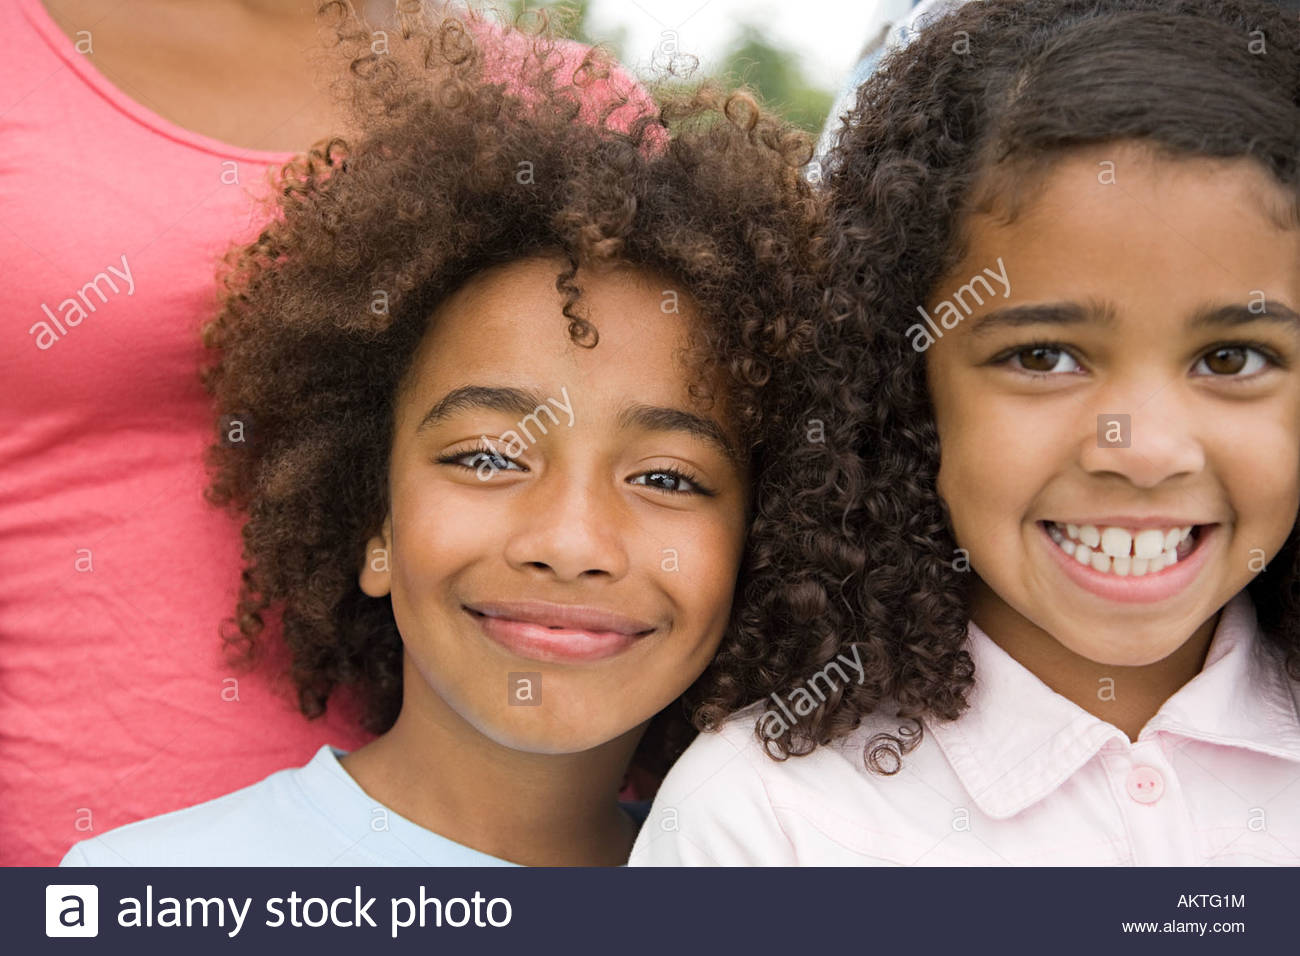 Boy and girl smiling - Stock Image